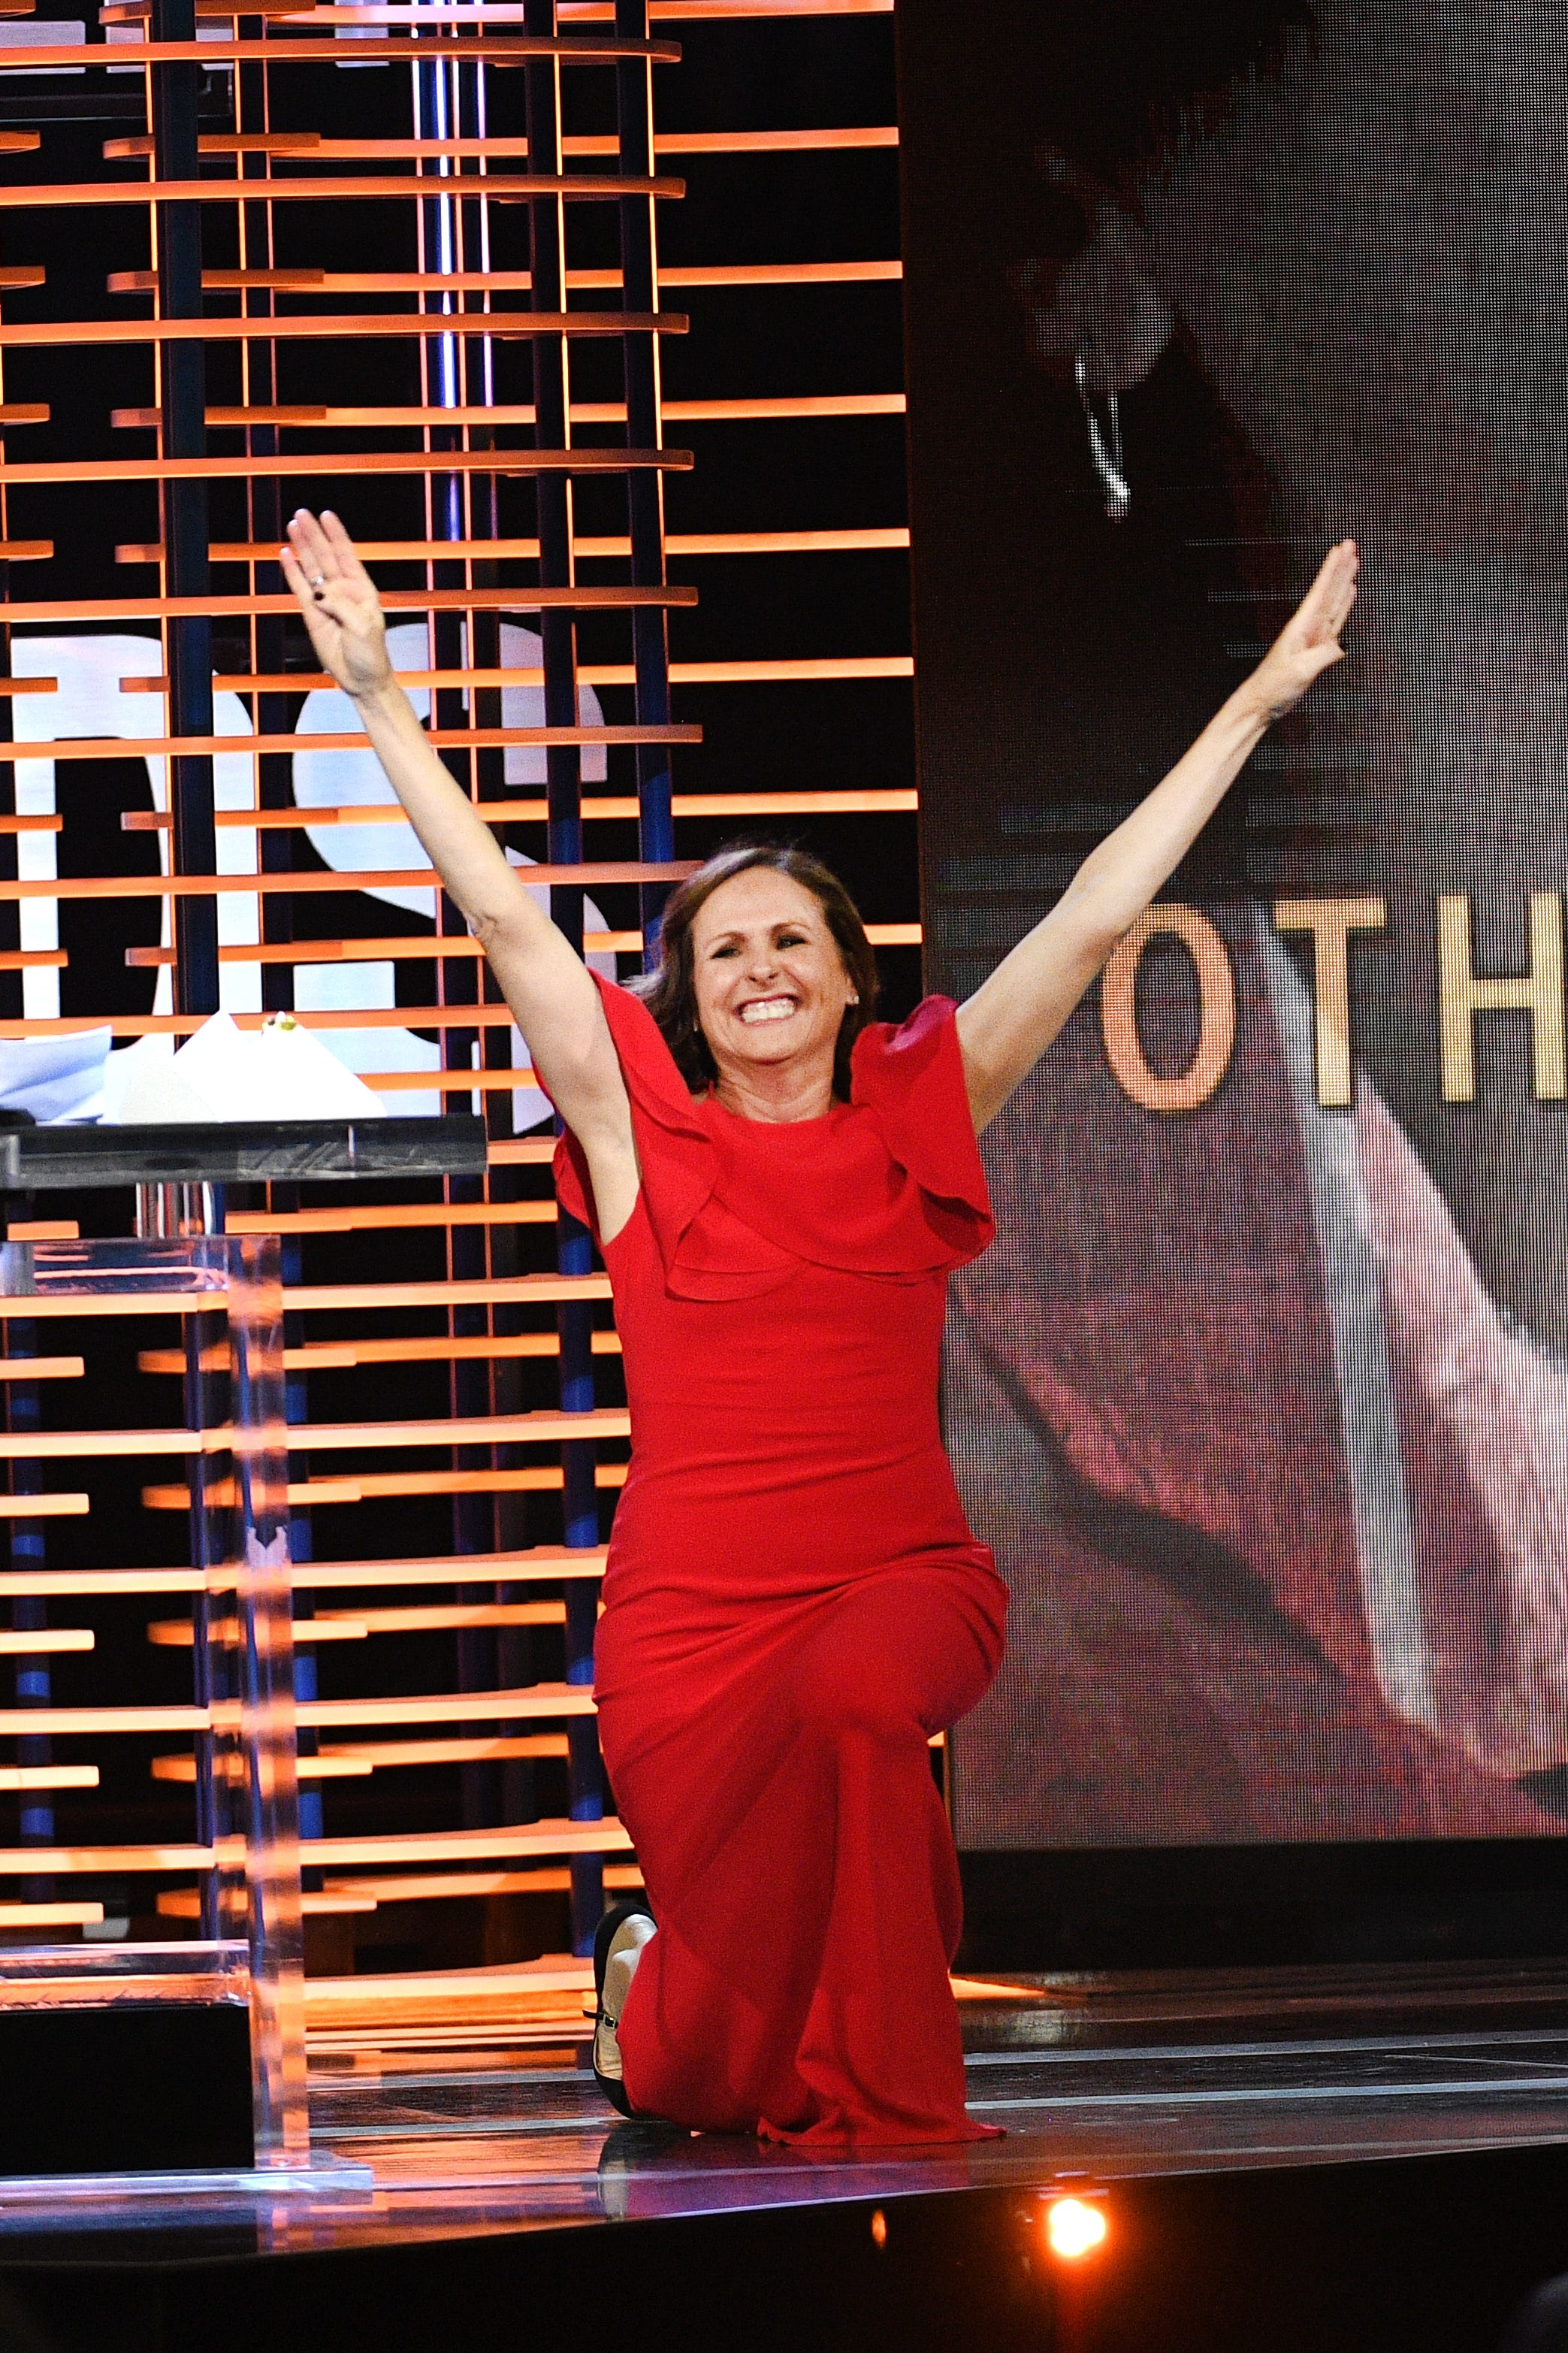 Superstar! Molly Shannon accepts Spirit Award with signature move